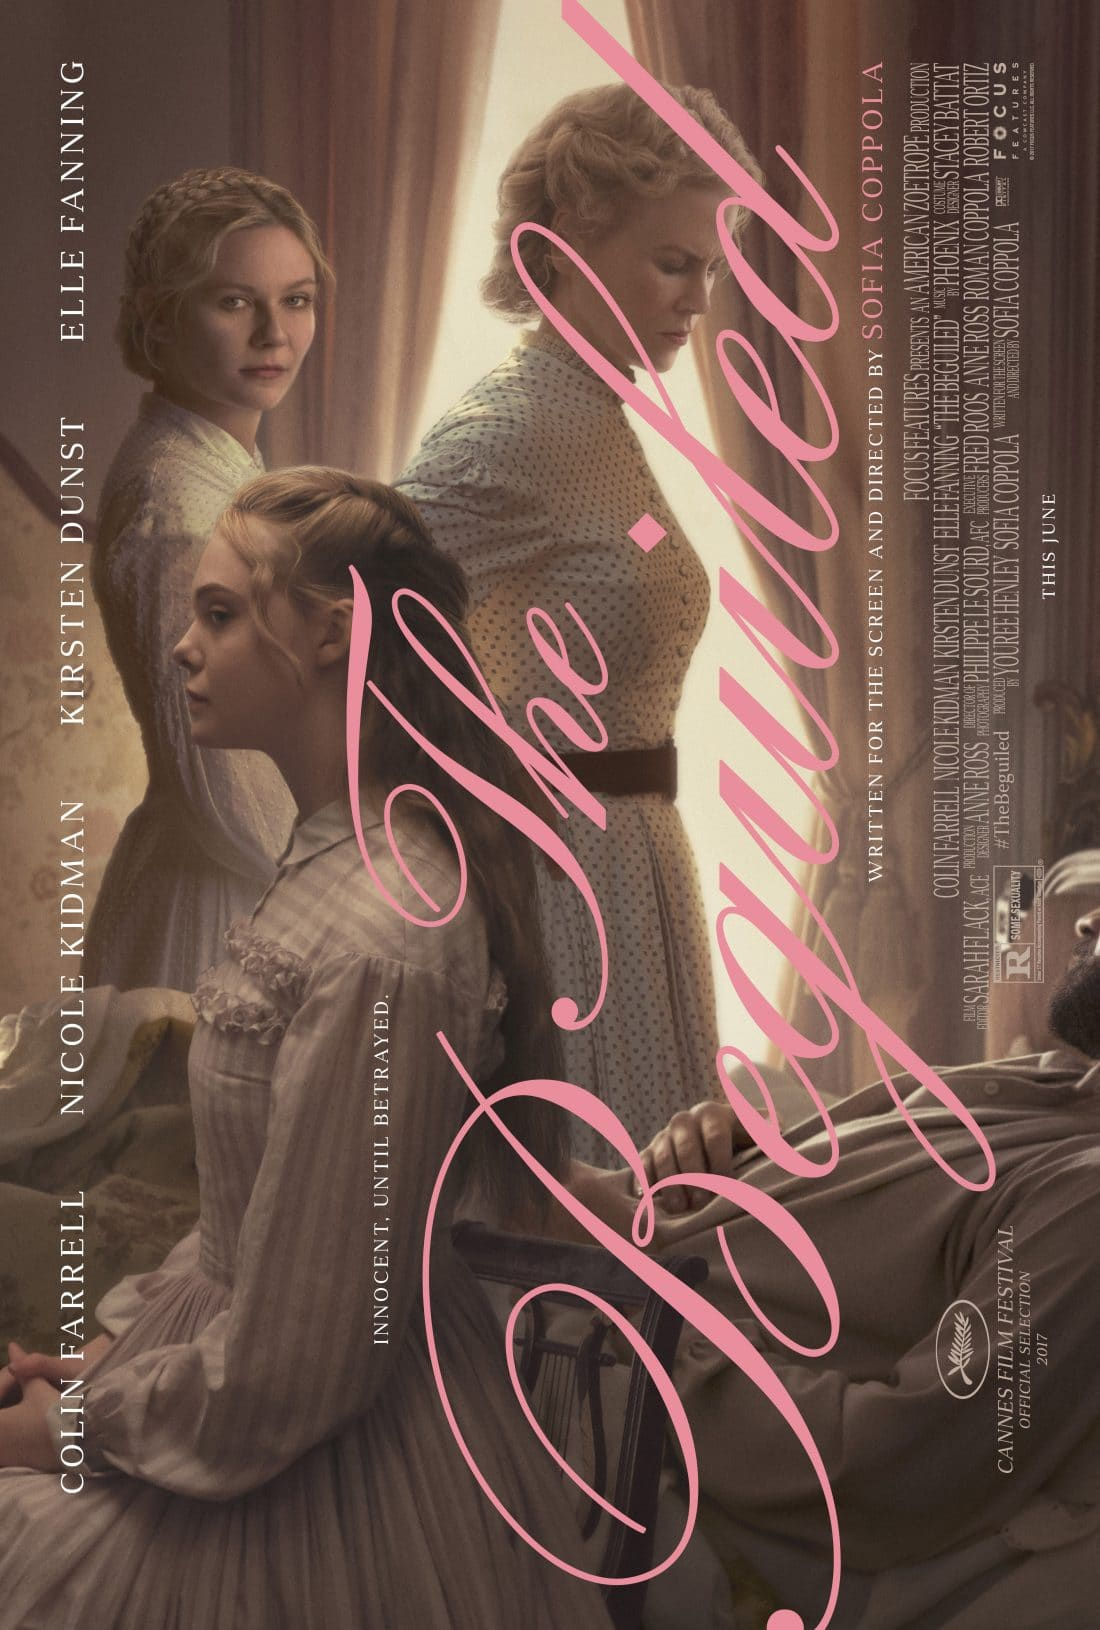 Read an intriguing Interview with Sofia Coppola, Kirsten Dunst, Elle Fanning, Director and cast of The Beguiled. To find out what it was like to bring this all-star woman cast film to life.